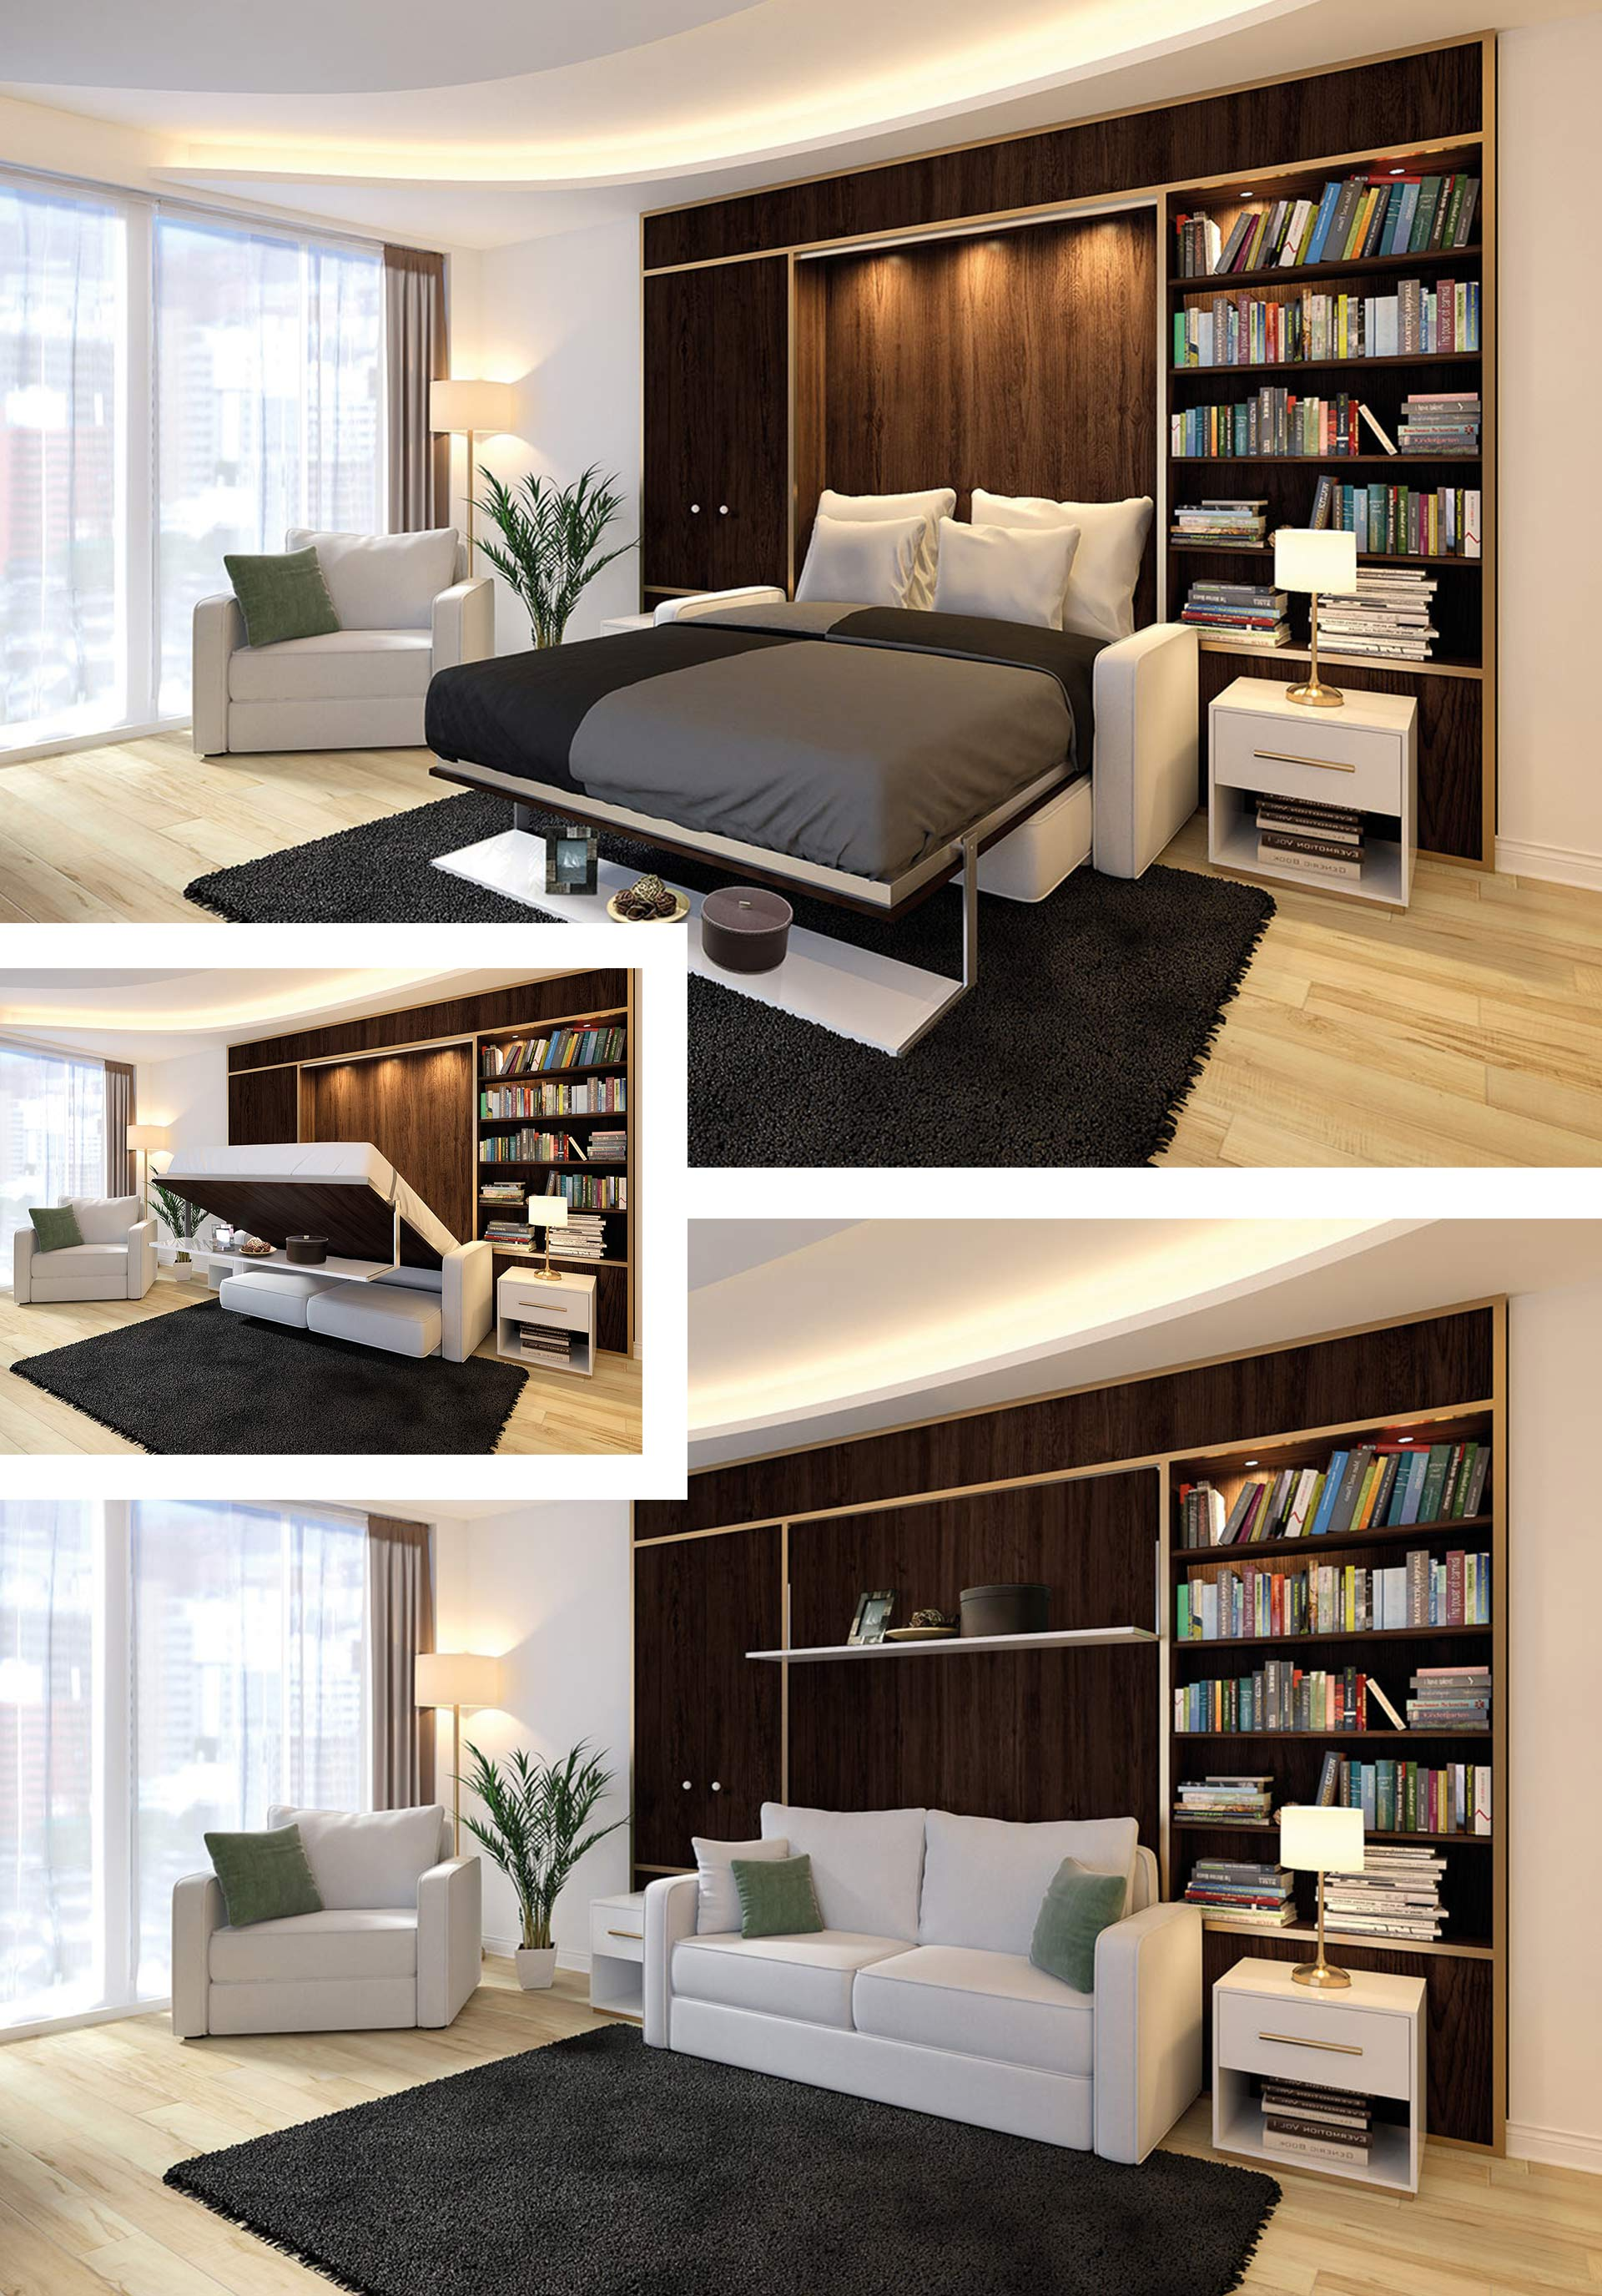 wall-bed-with-couch-transform-open-all